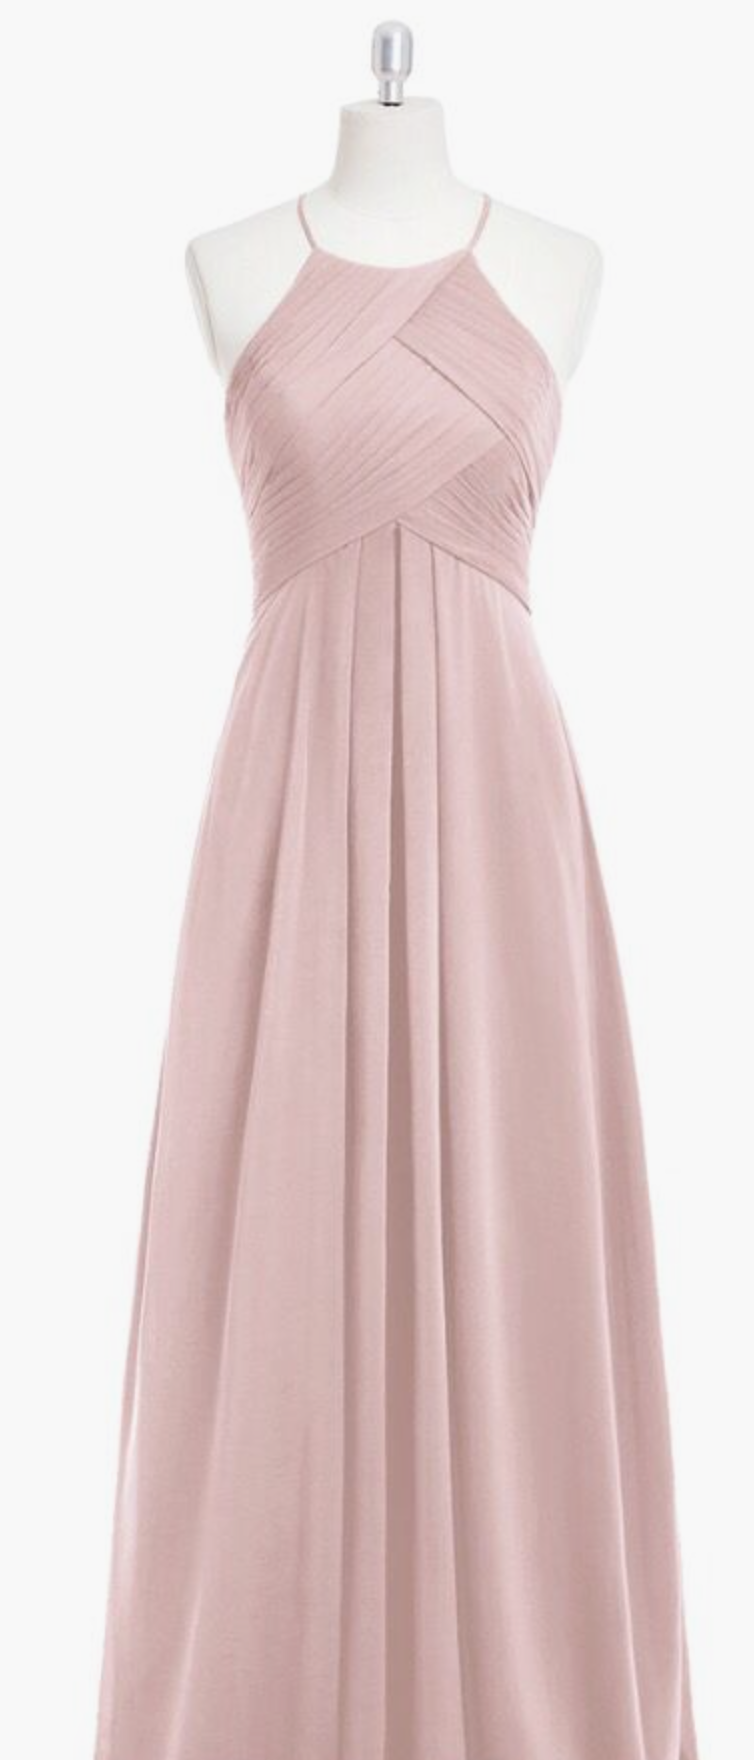 Dusty Rose Bridesmaid Dress - 5 On Friday - Communikait